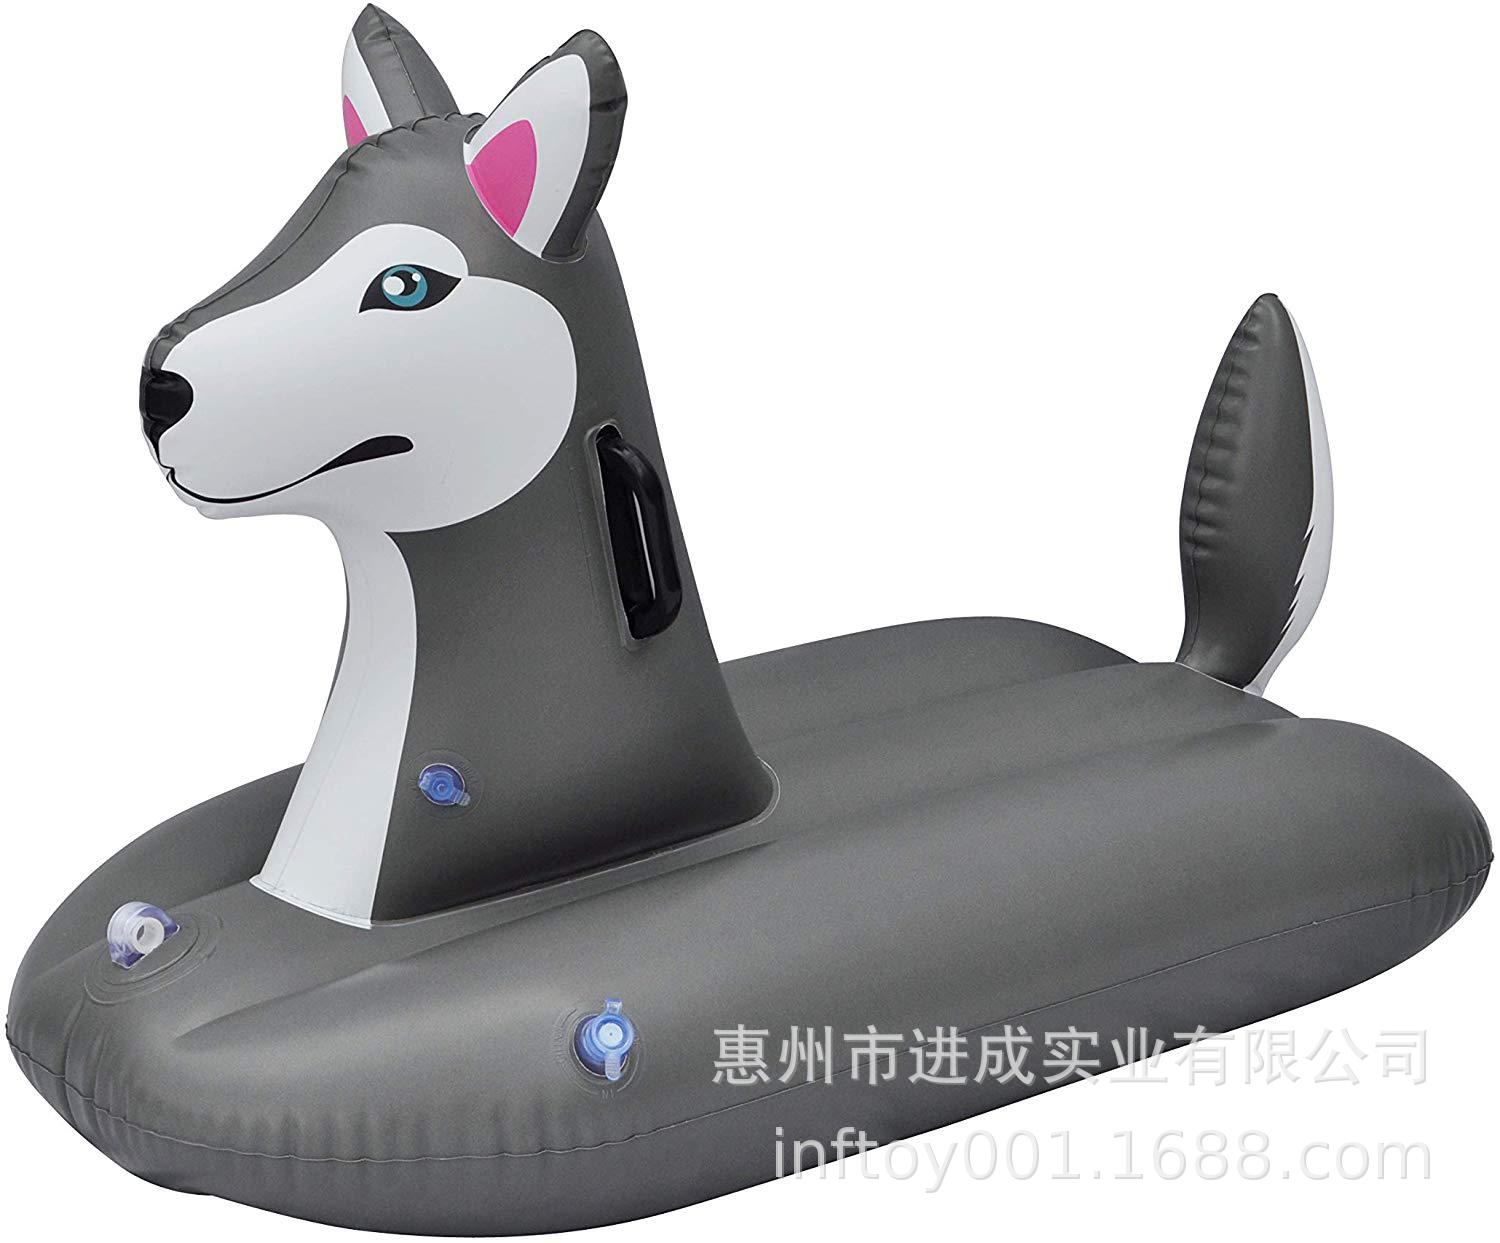 Inflatable Skiing Toy Thick Ultra-stretch Cold-resistant PVC Simulated Animal Dog Skiing Floating Row Water Floating Bed Recline